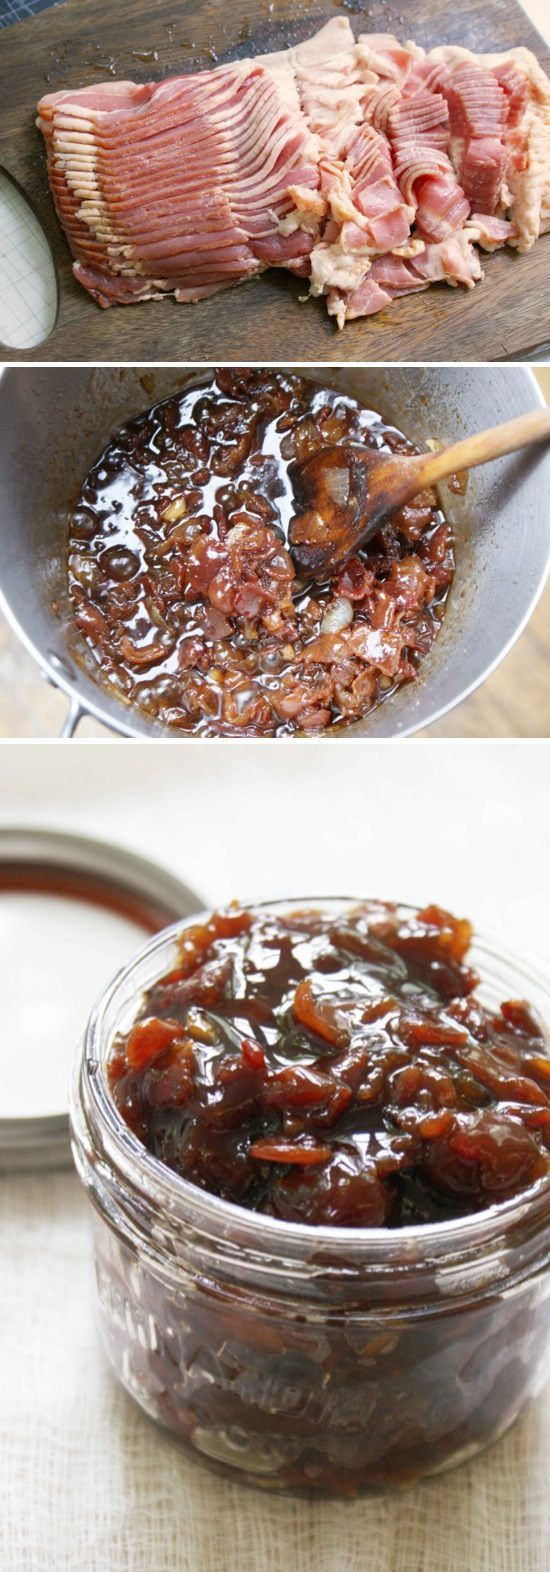 Bacon Jam | Recipe By Photo   ... Hmm  might be a nice addition